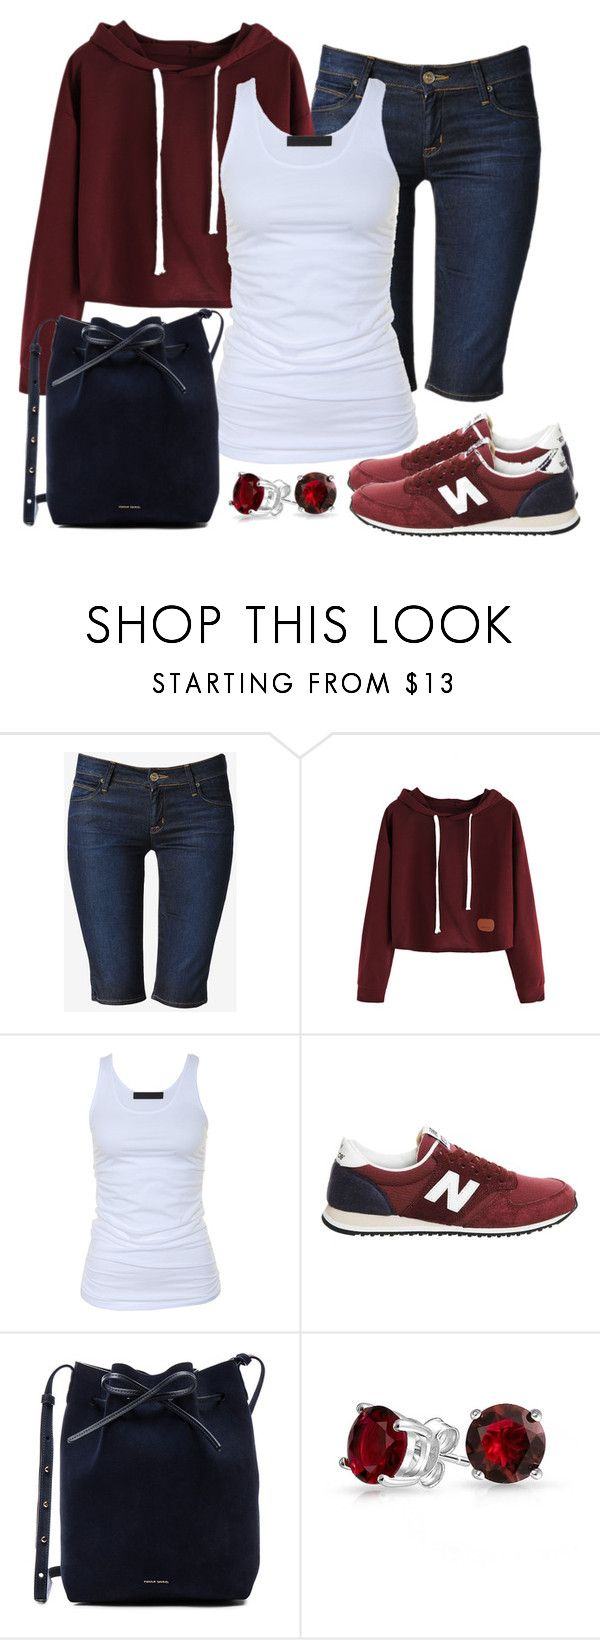 """Casual Friday"" by gallant81 ❤ liked on Polyvore featuring Hudson Jeans, Tusnelda Bloch, New Balance, Mansur Gavriel and Bling Jewelry"